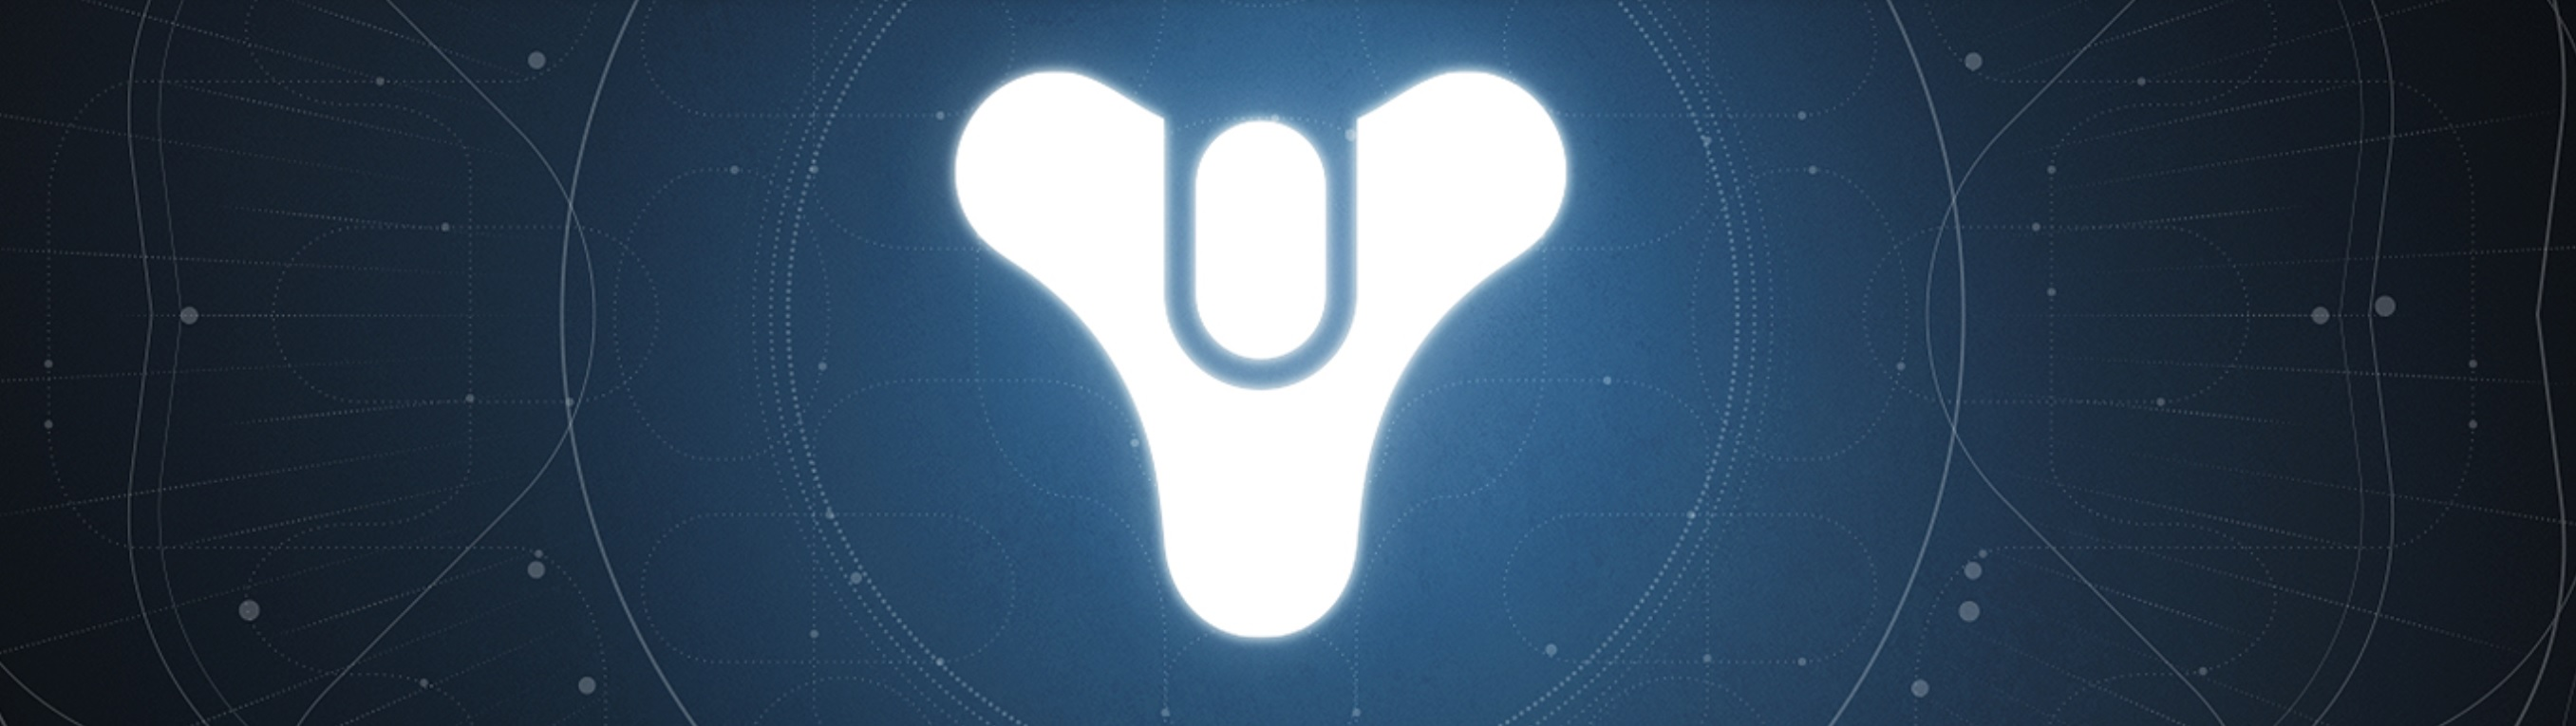 Bungie intends to share their next big plans for Destiny 2 very soon screenshot